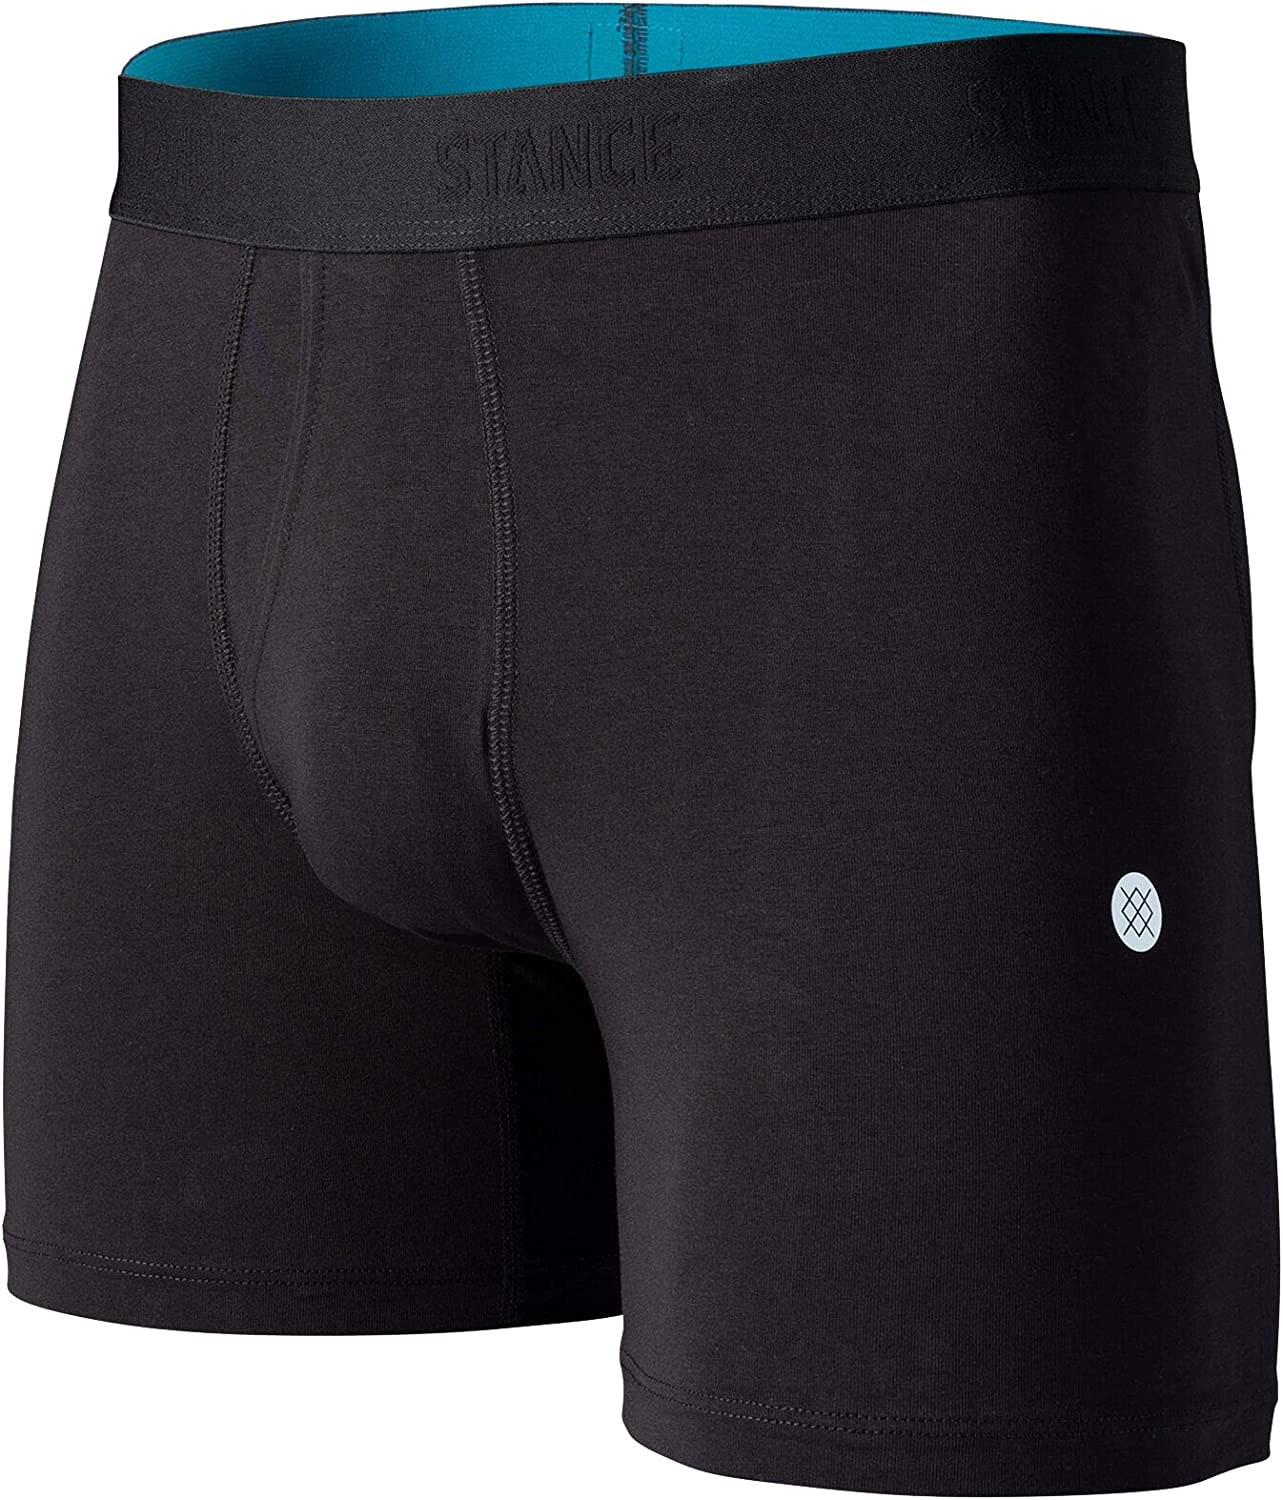 Stance Standard ST Wholester Boxer Brief 6in